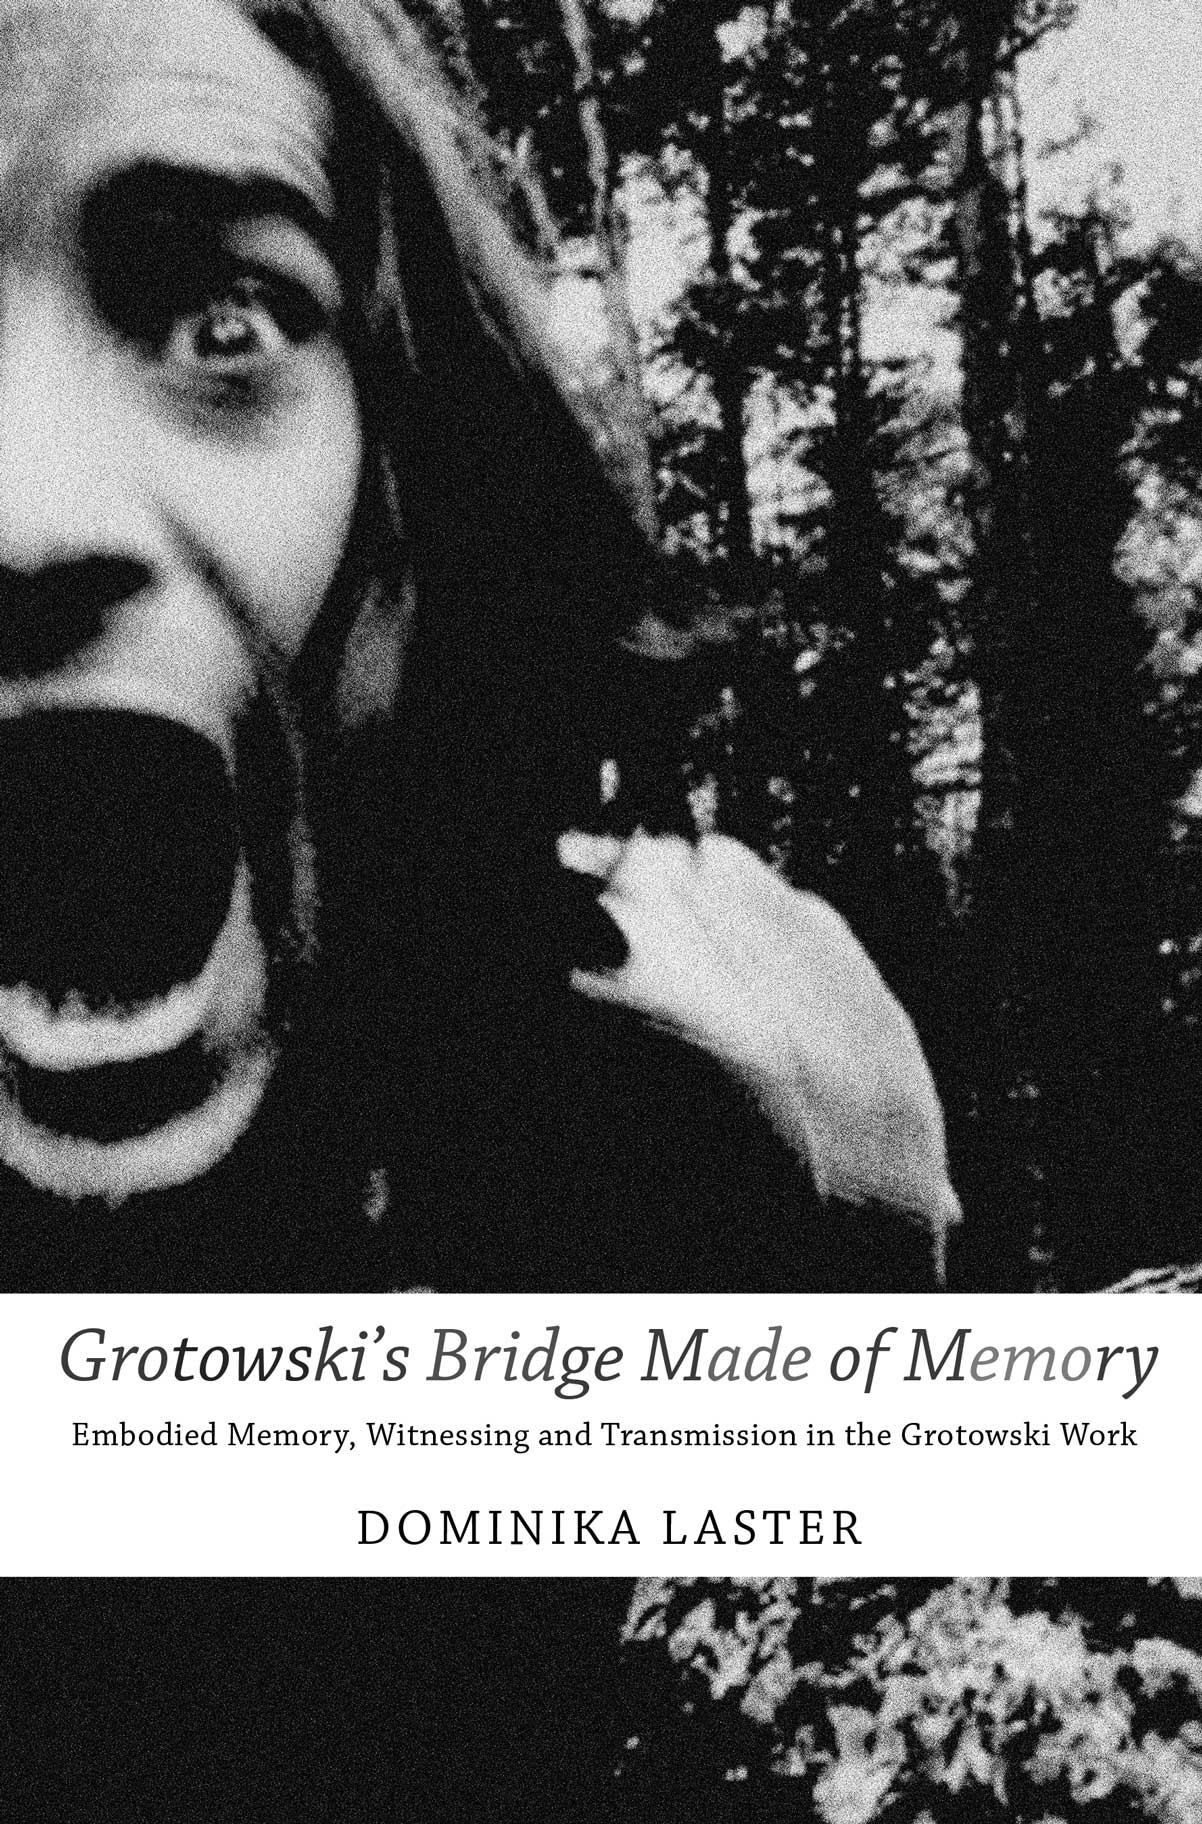 Grotowski's Bridge Made of Memory: Embodied Memory, Witnessing and Transmission in the Grotowski Work by Dominika Laster |  Seagull Books